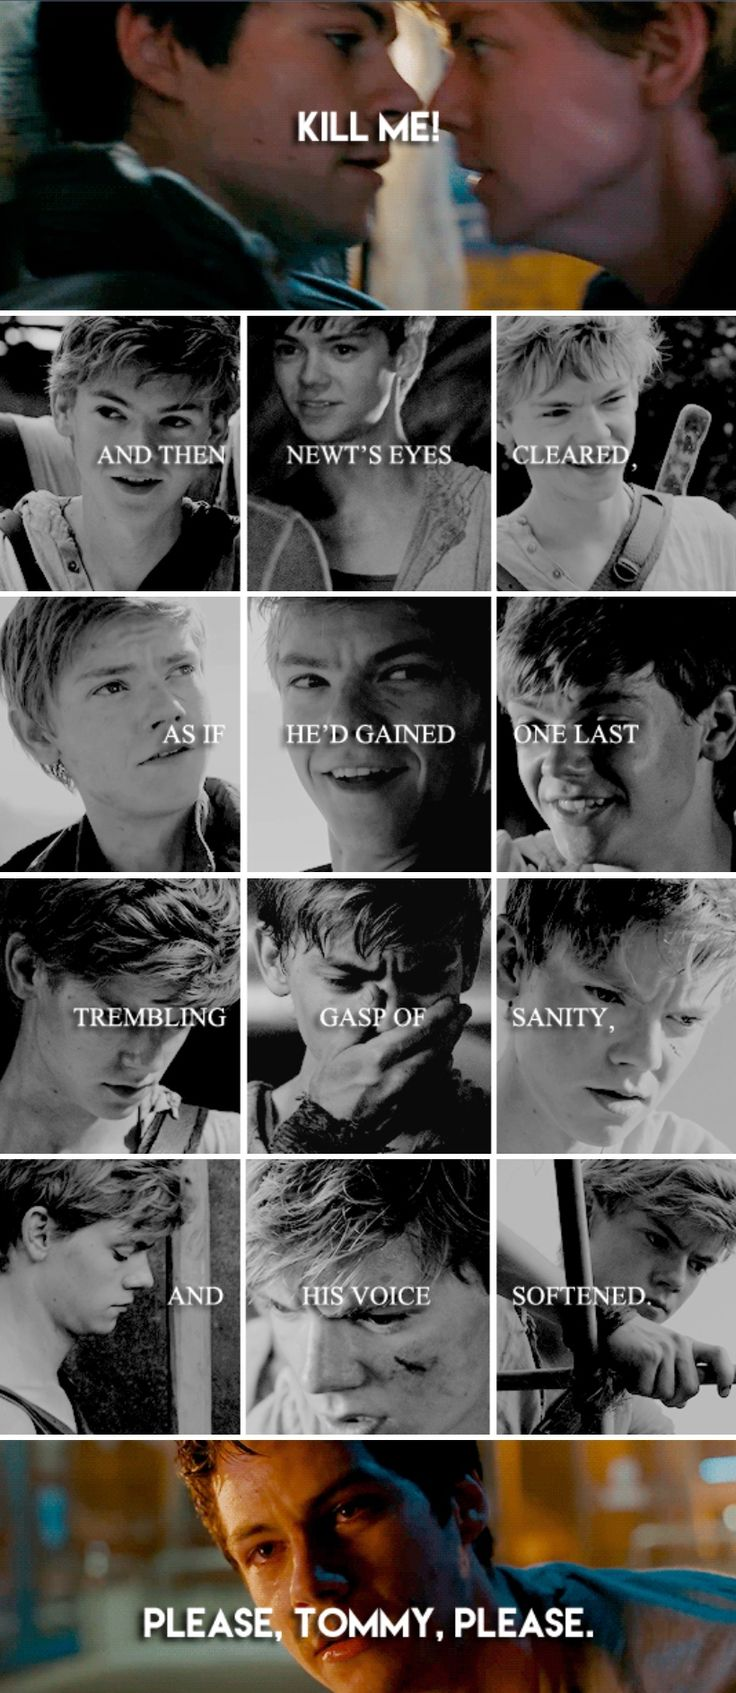 The Death Cure - With his heart falling into a black abyss, Thomas p u l l e d the trigger.